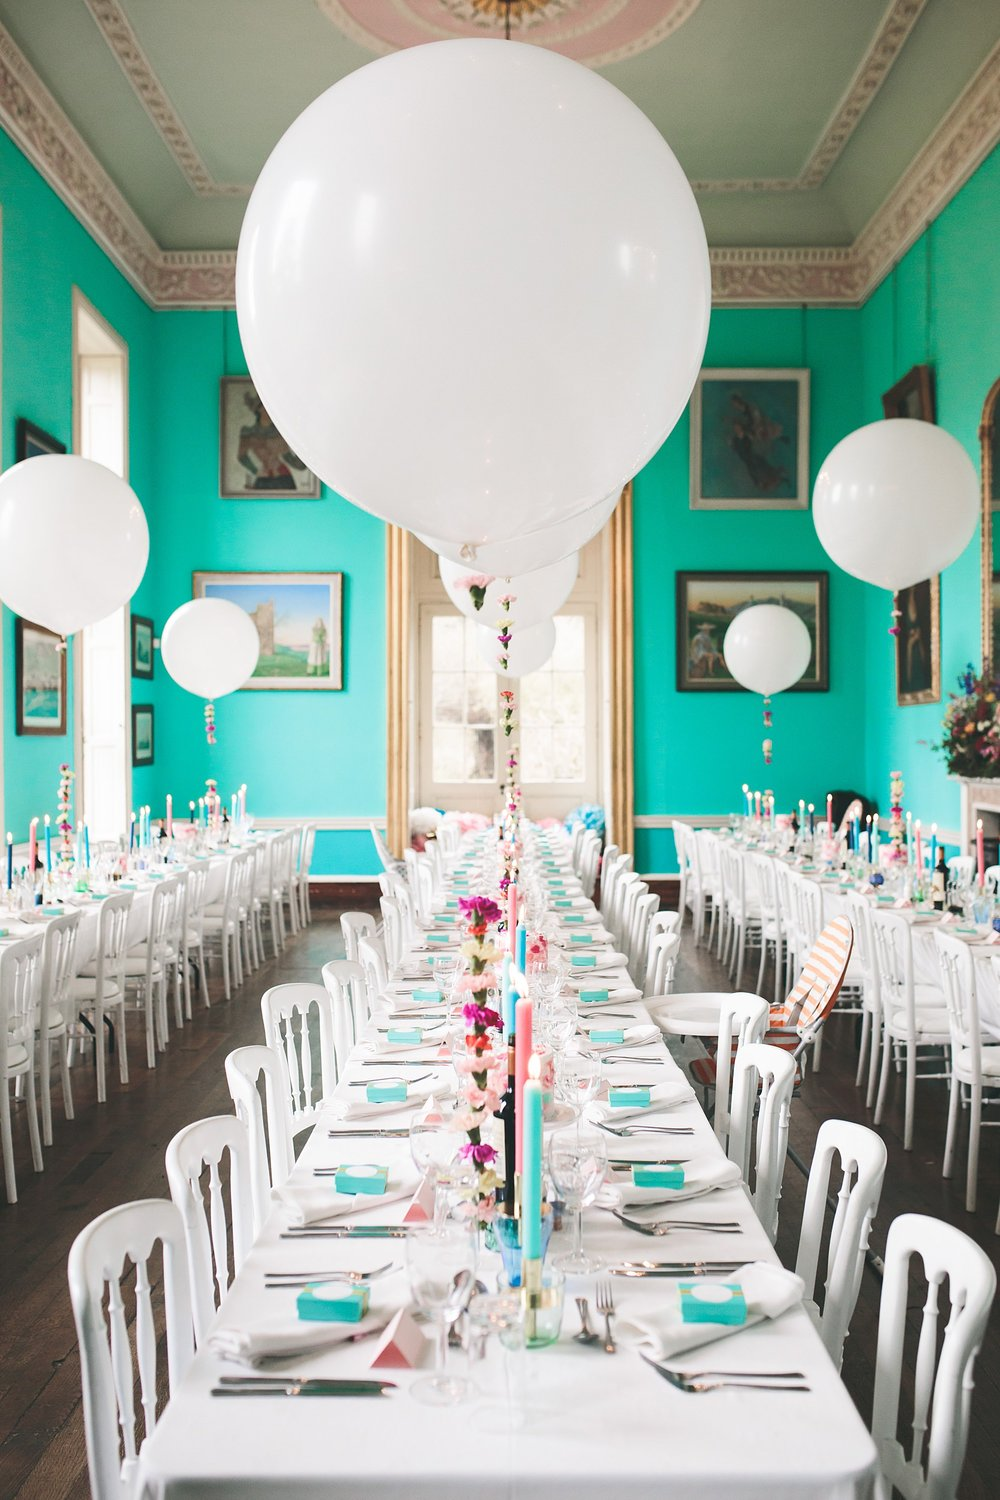 Wes Anderson wedding photography